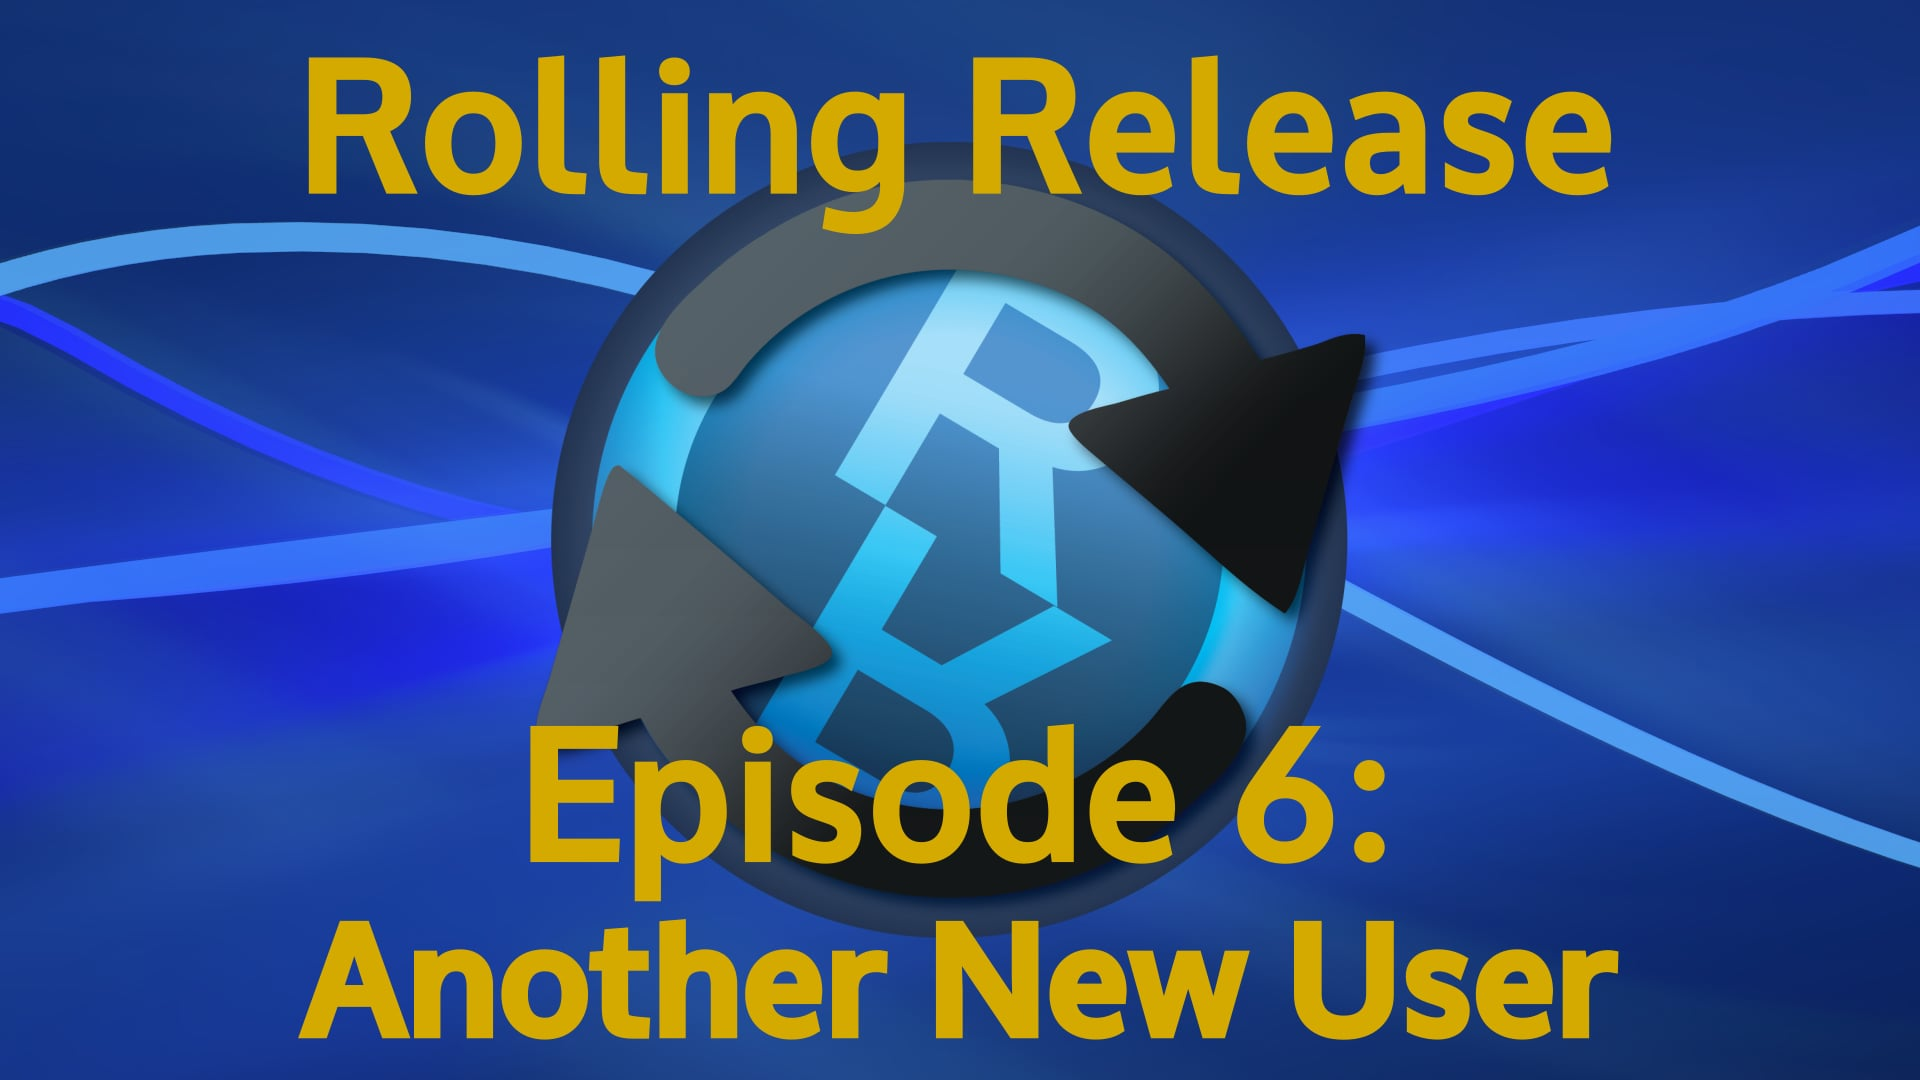 Another New User - Rolling Release #6